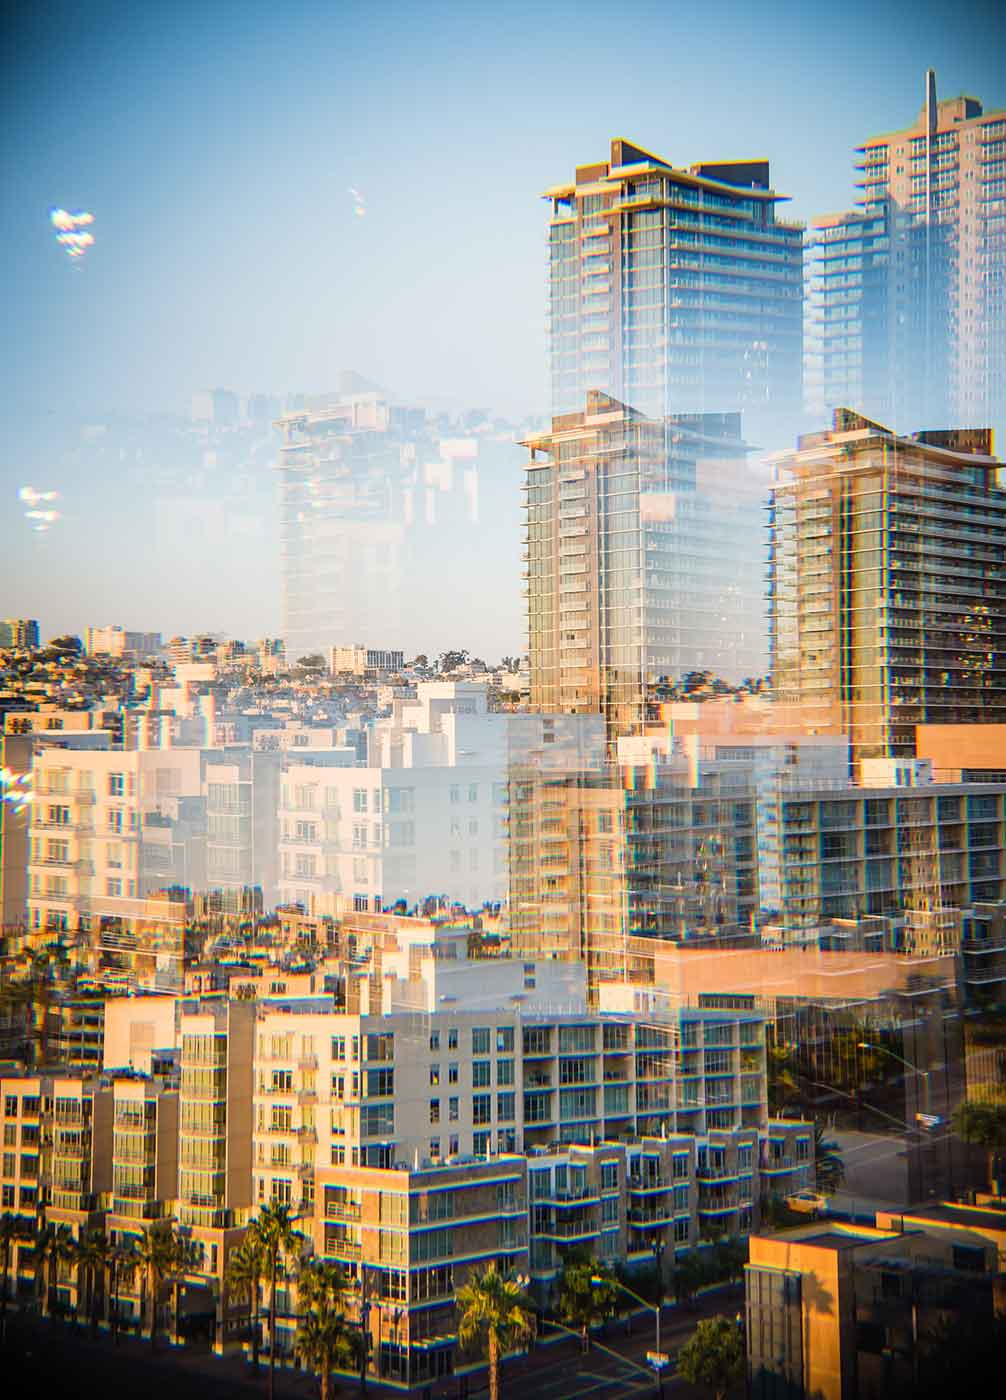 smlSan-Diego-Vacation---August-2015-40.jpg